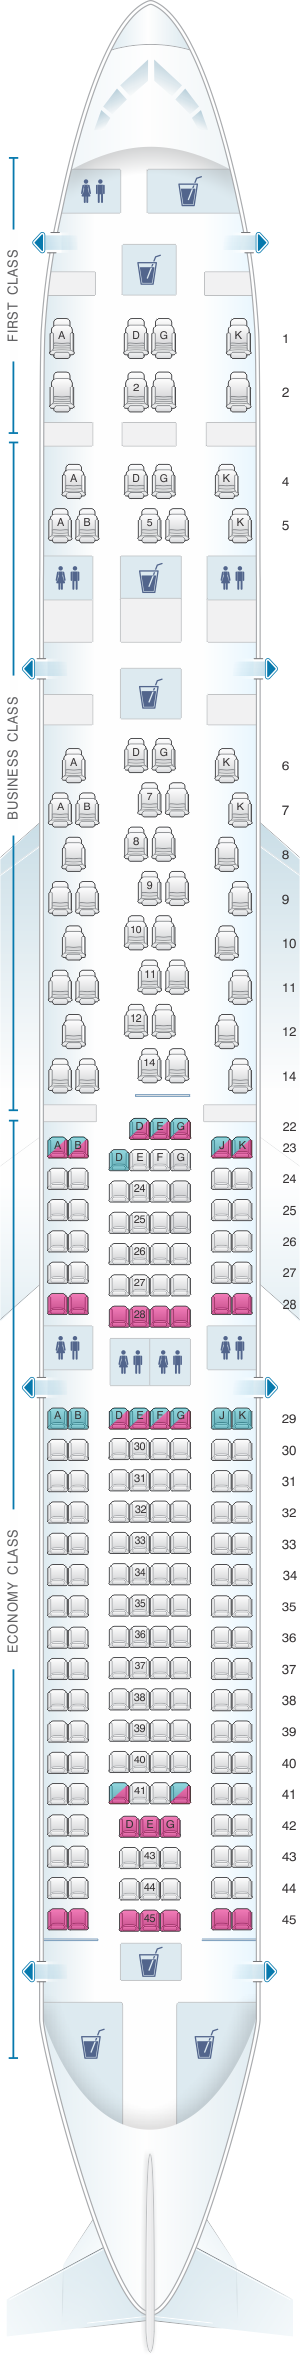 Find your seat map